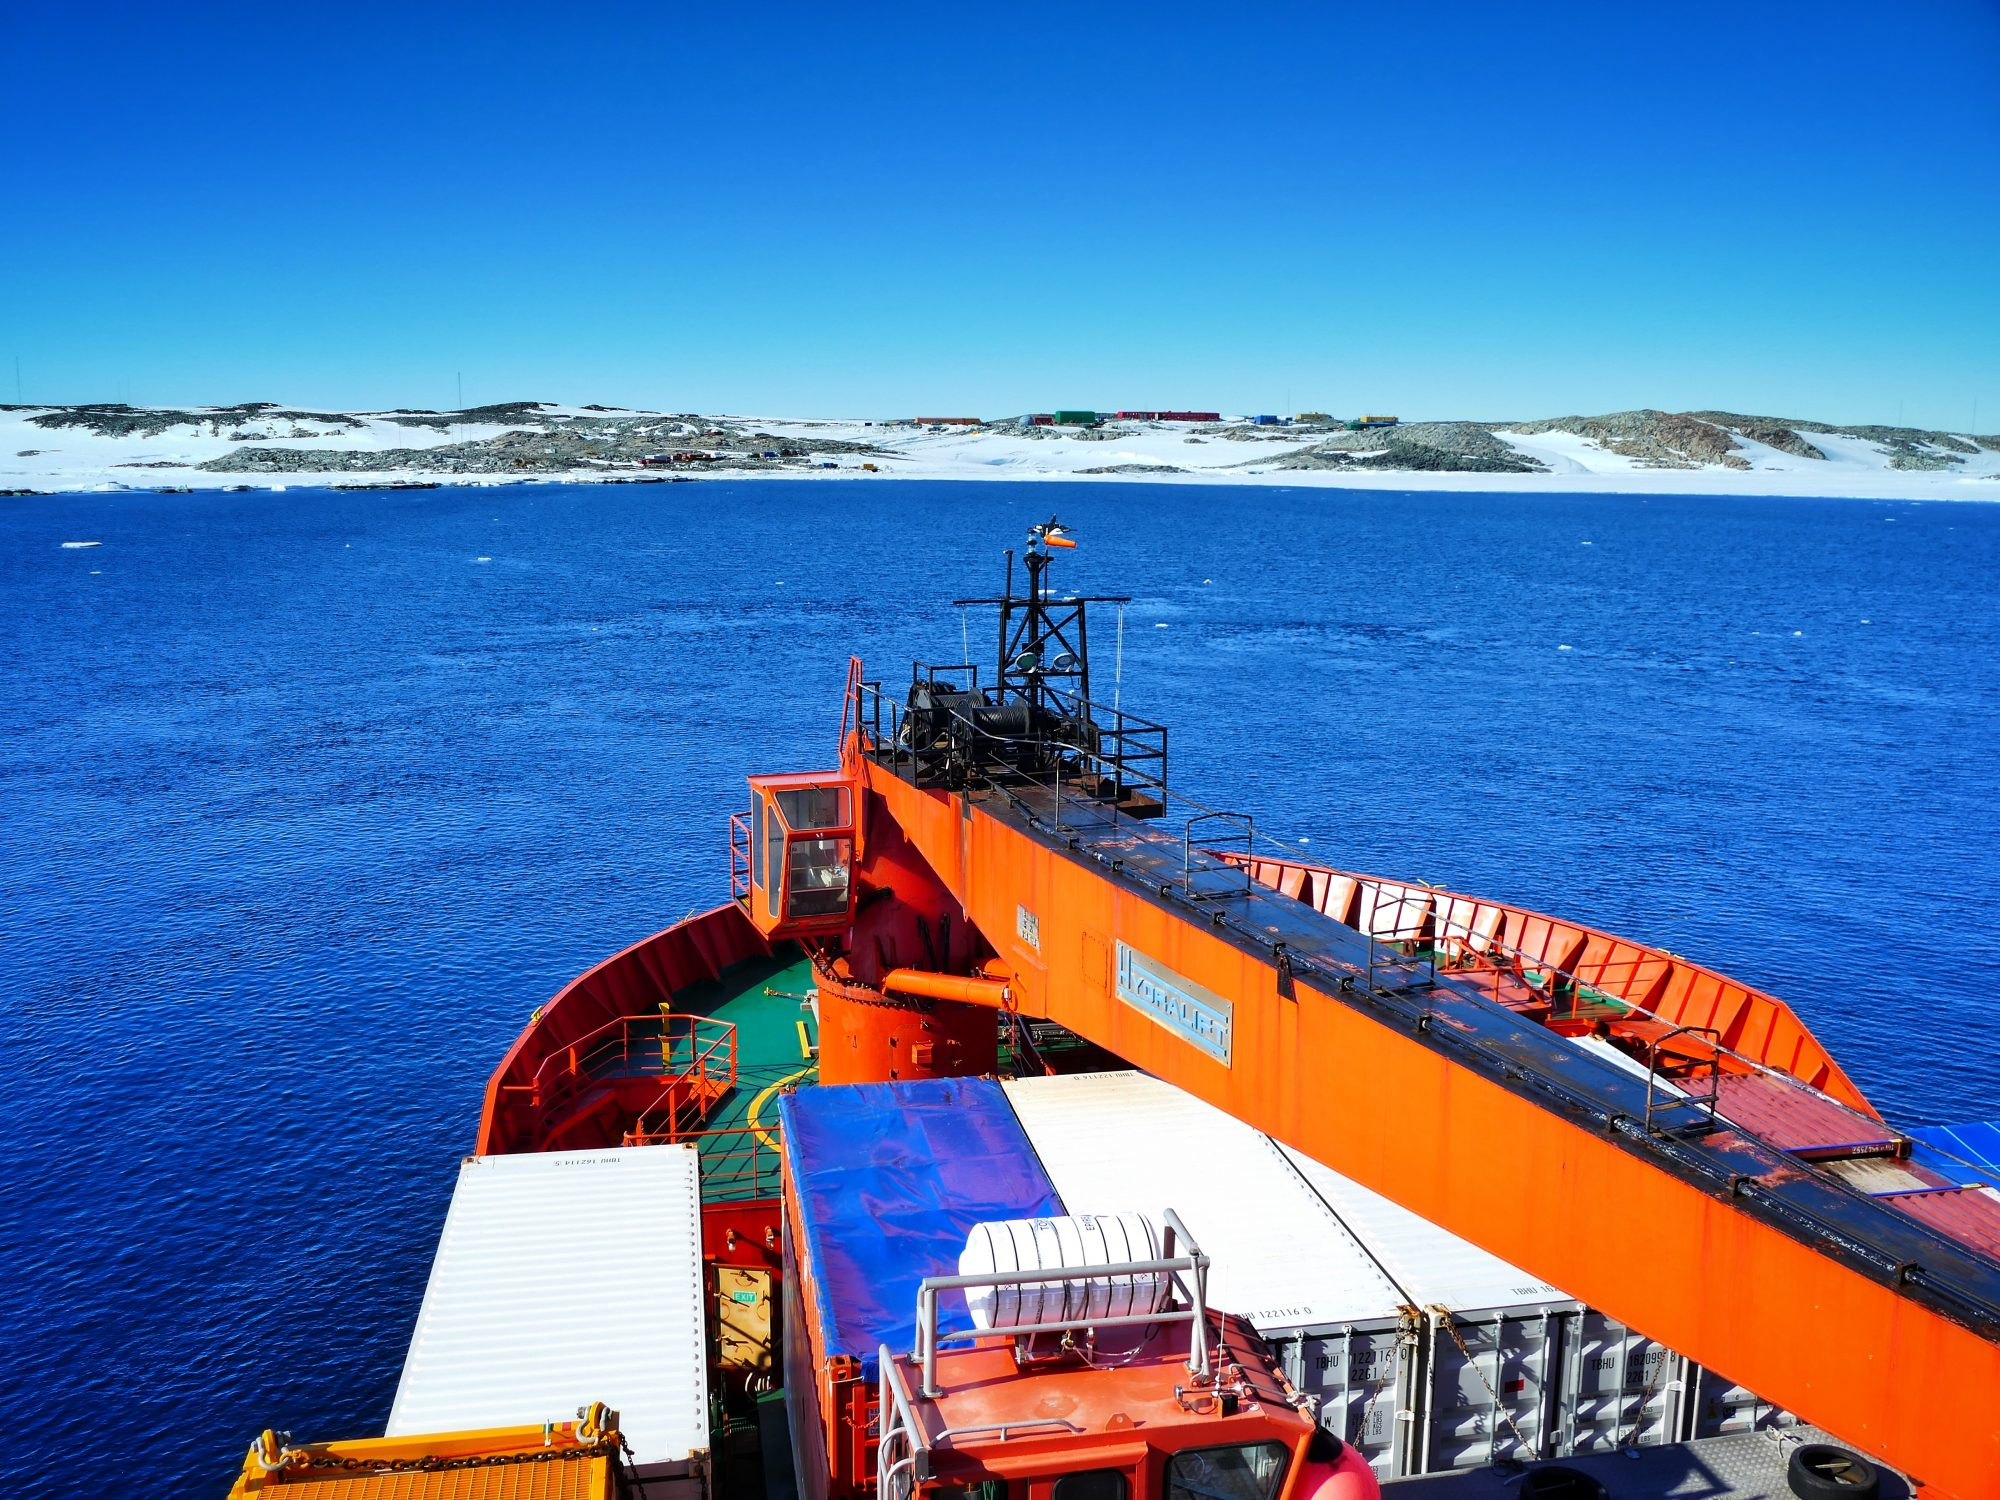 View over deck of icebreaker approaching Casey Station, Antarctica